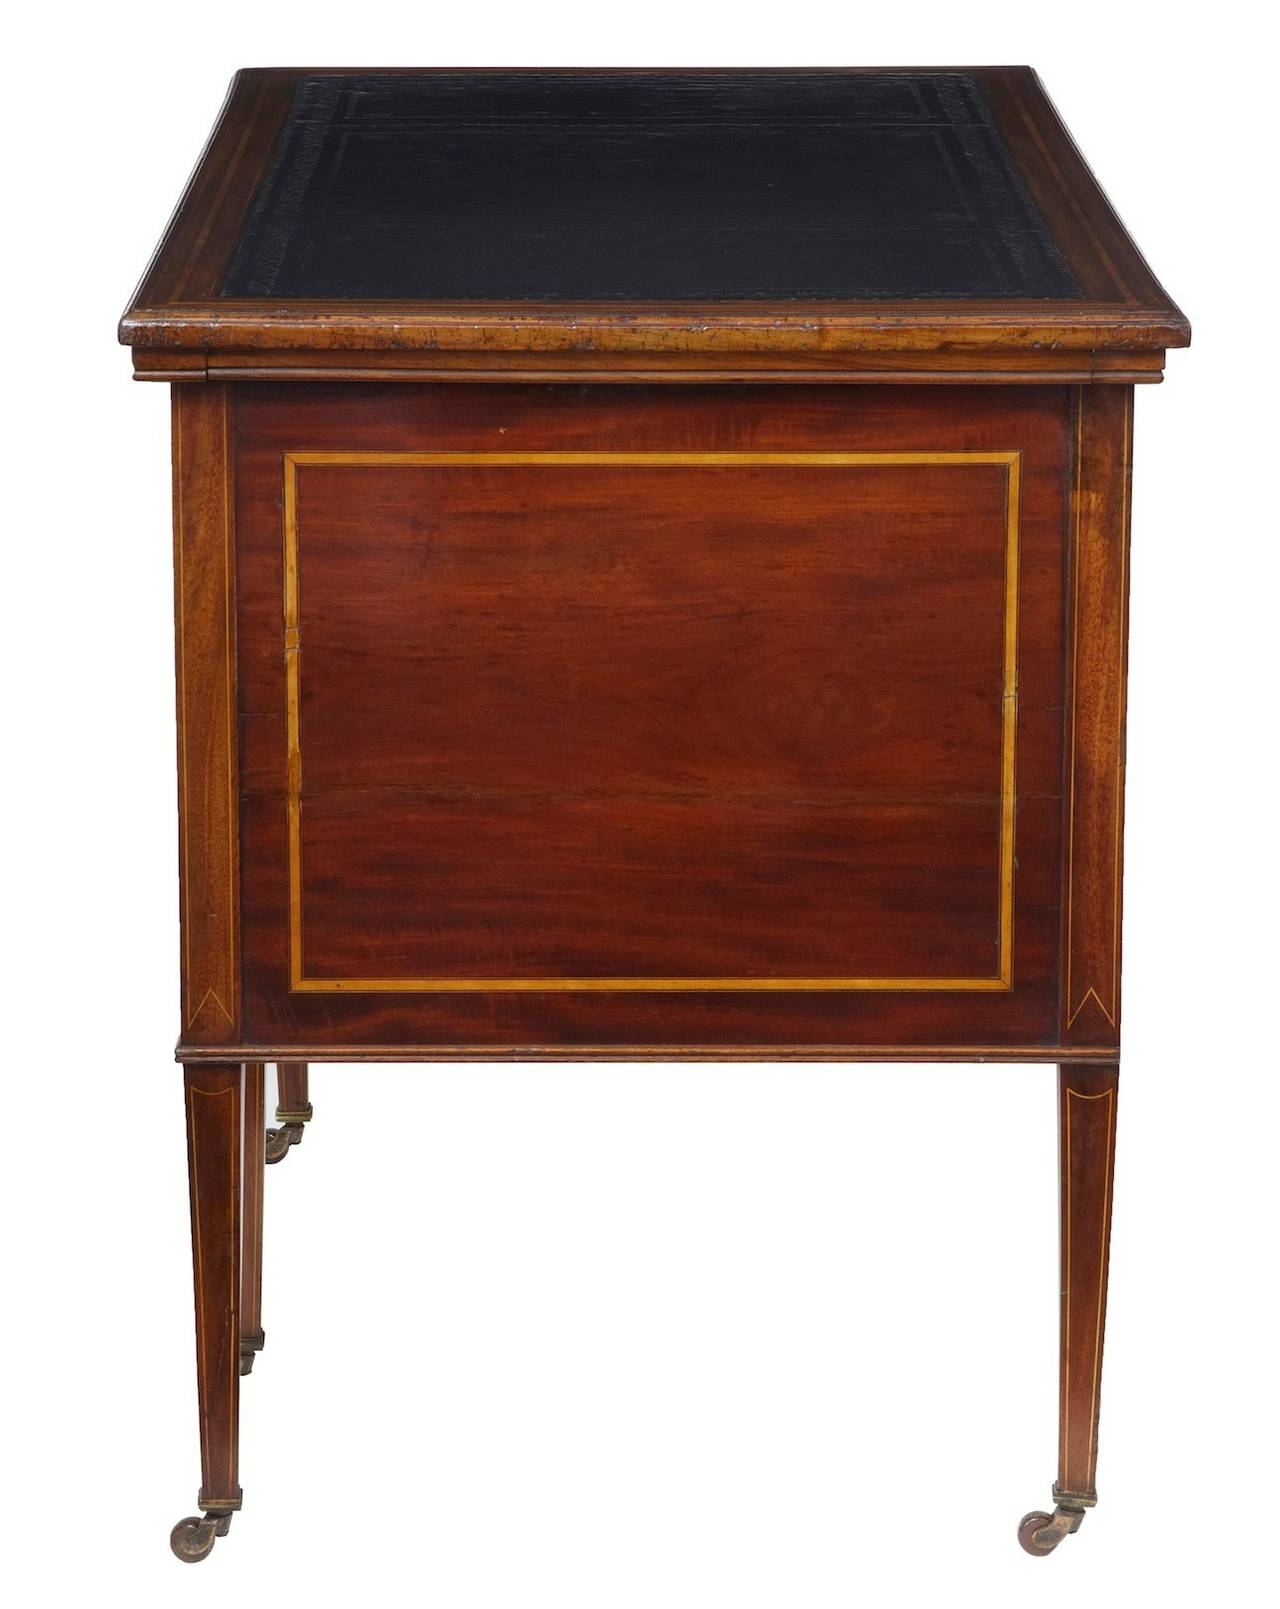 Wonderful image of Late Victorian Inlaid Mahogany Writing Desk at 1stdibs with #AE701D color and 1280x1609 pixels